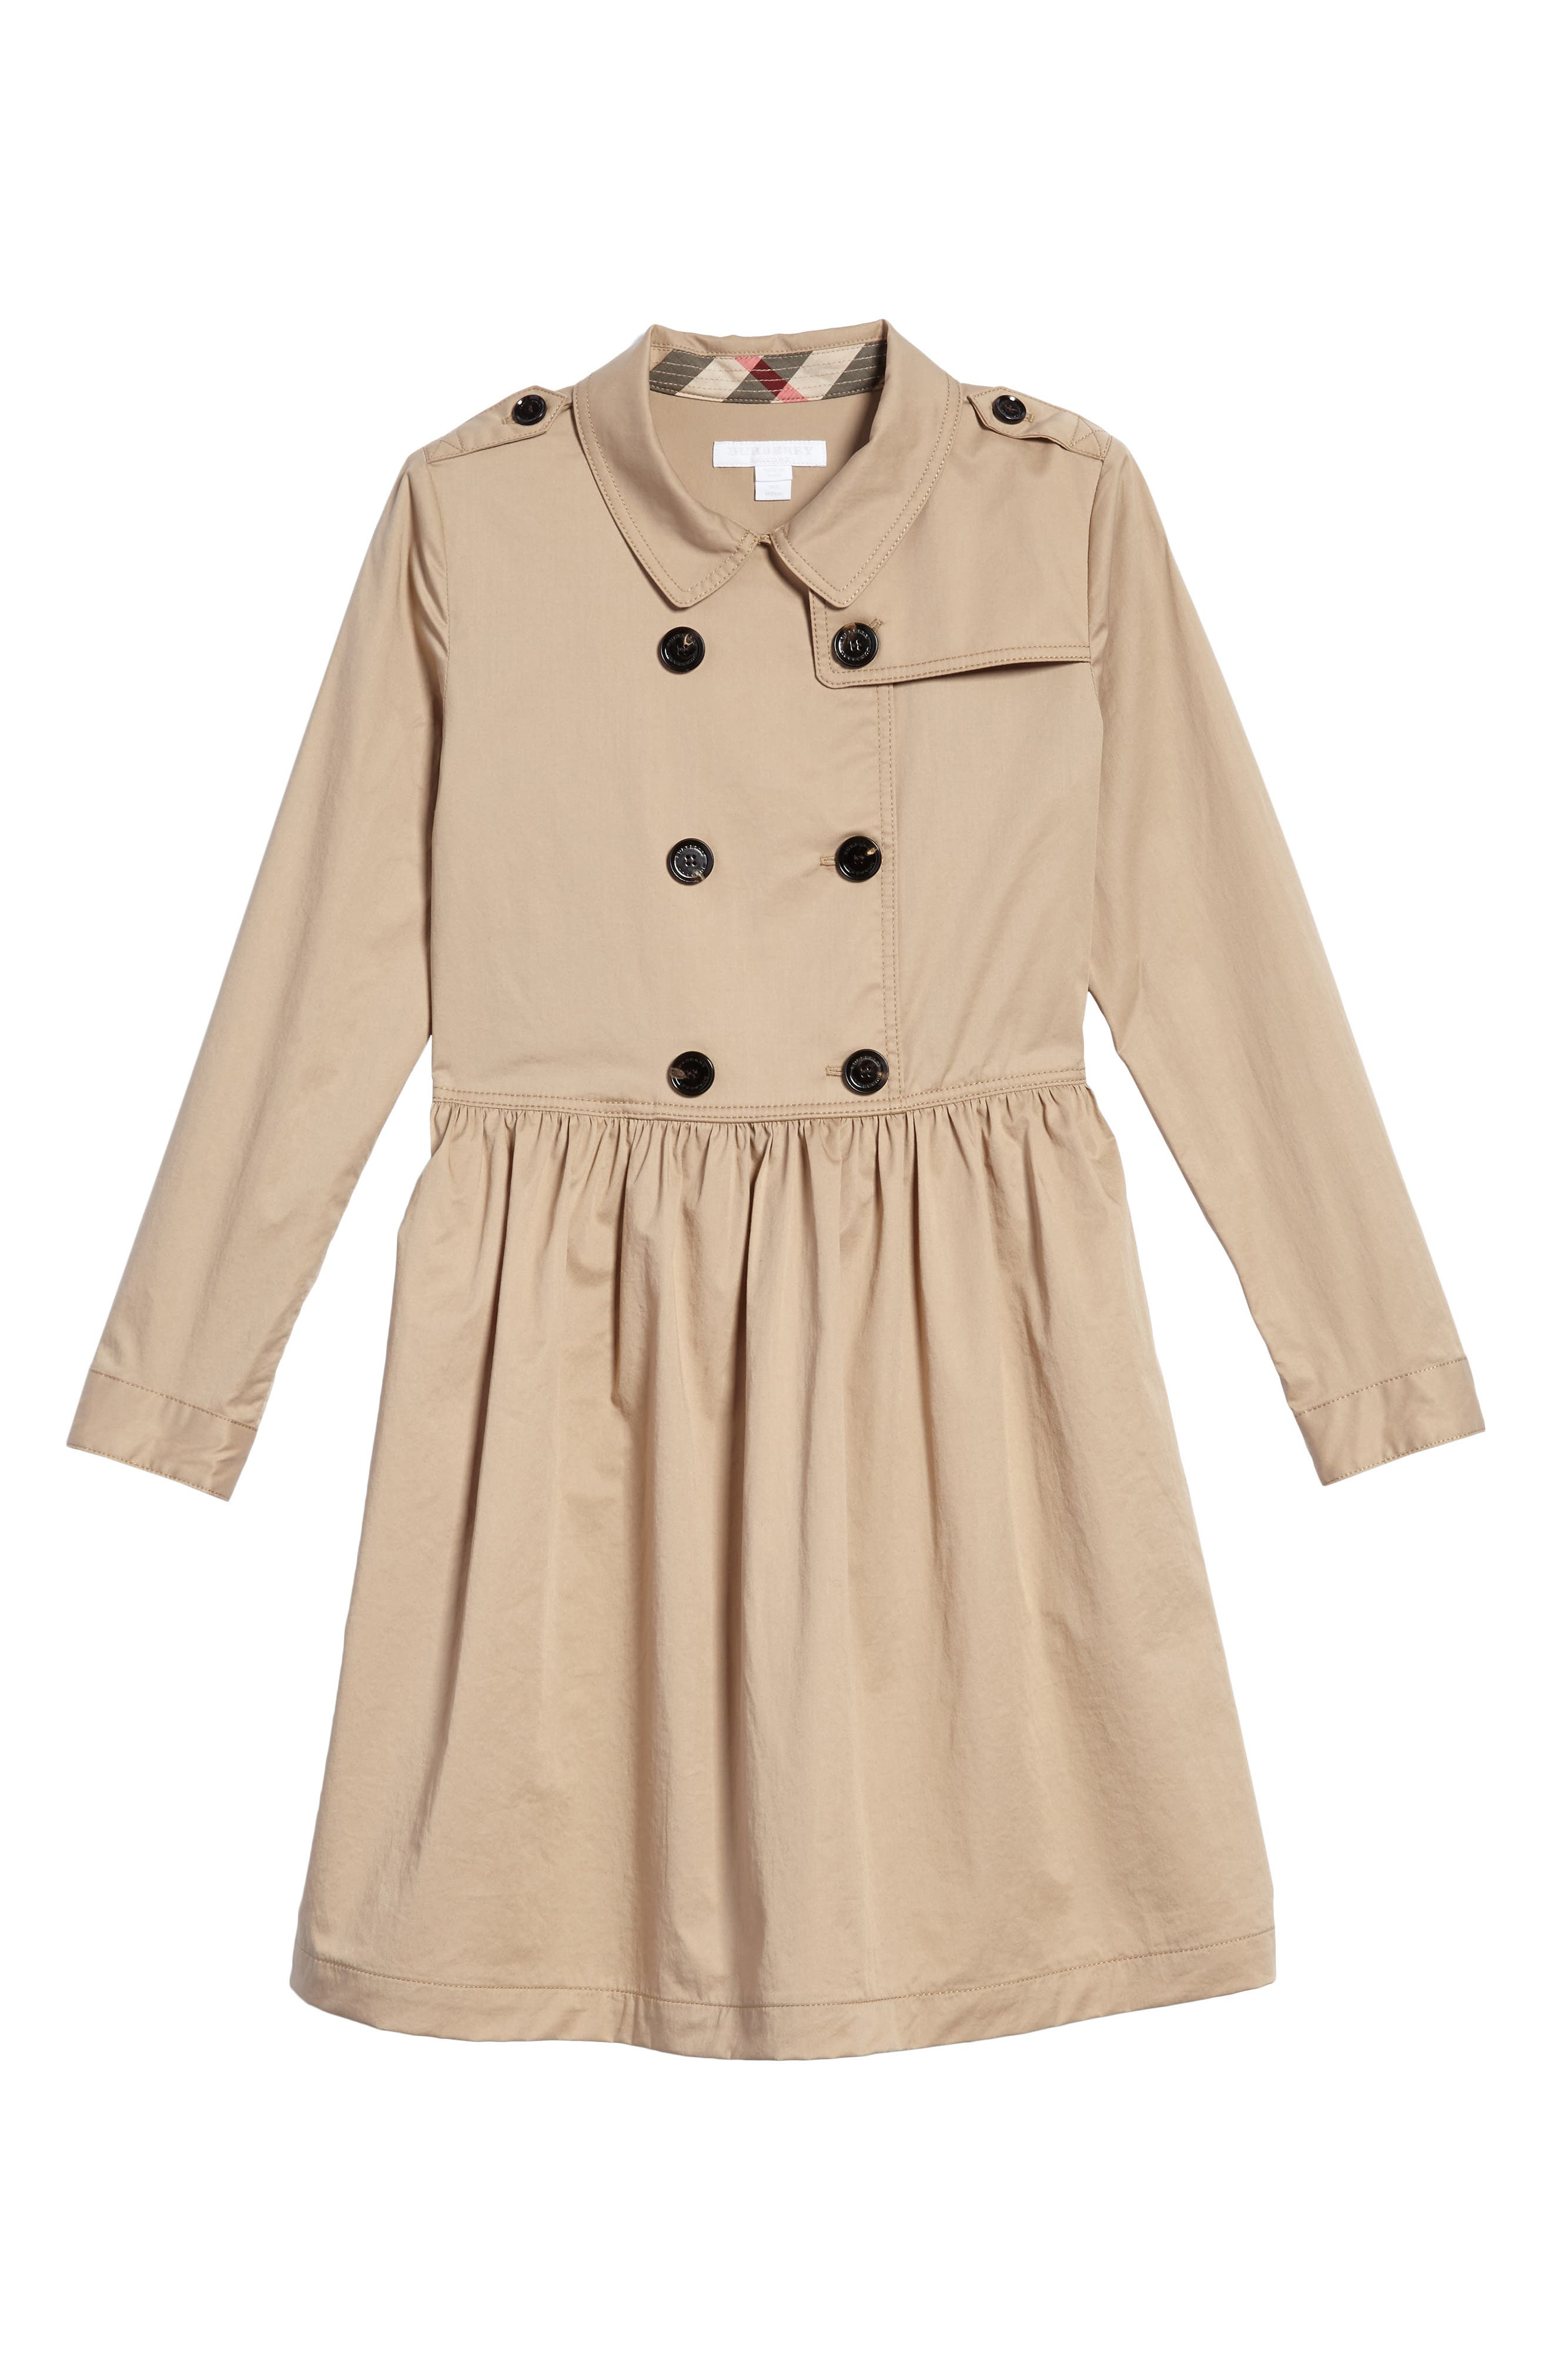 Alternate Image 1 Selected - Burberry Lillyana Trench Dress (Little Girls & Big Girls)